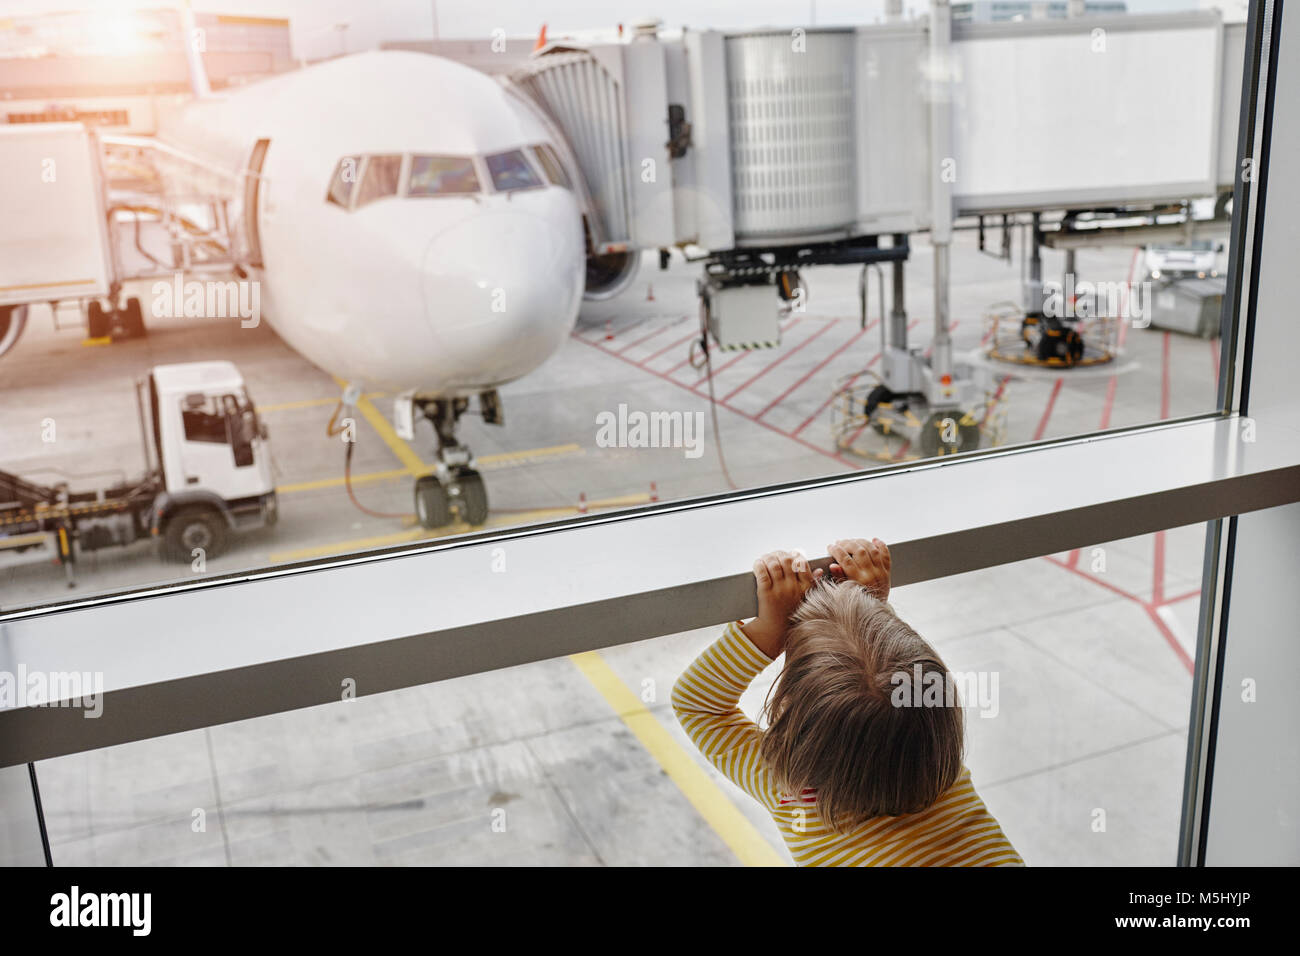 Little girl looking through window to airplane on the apron - Stock Image